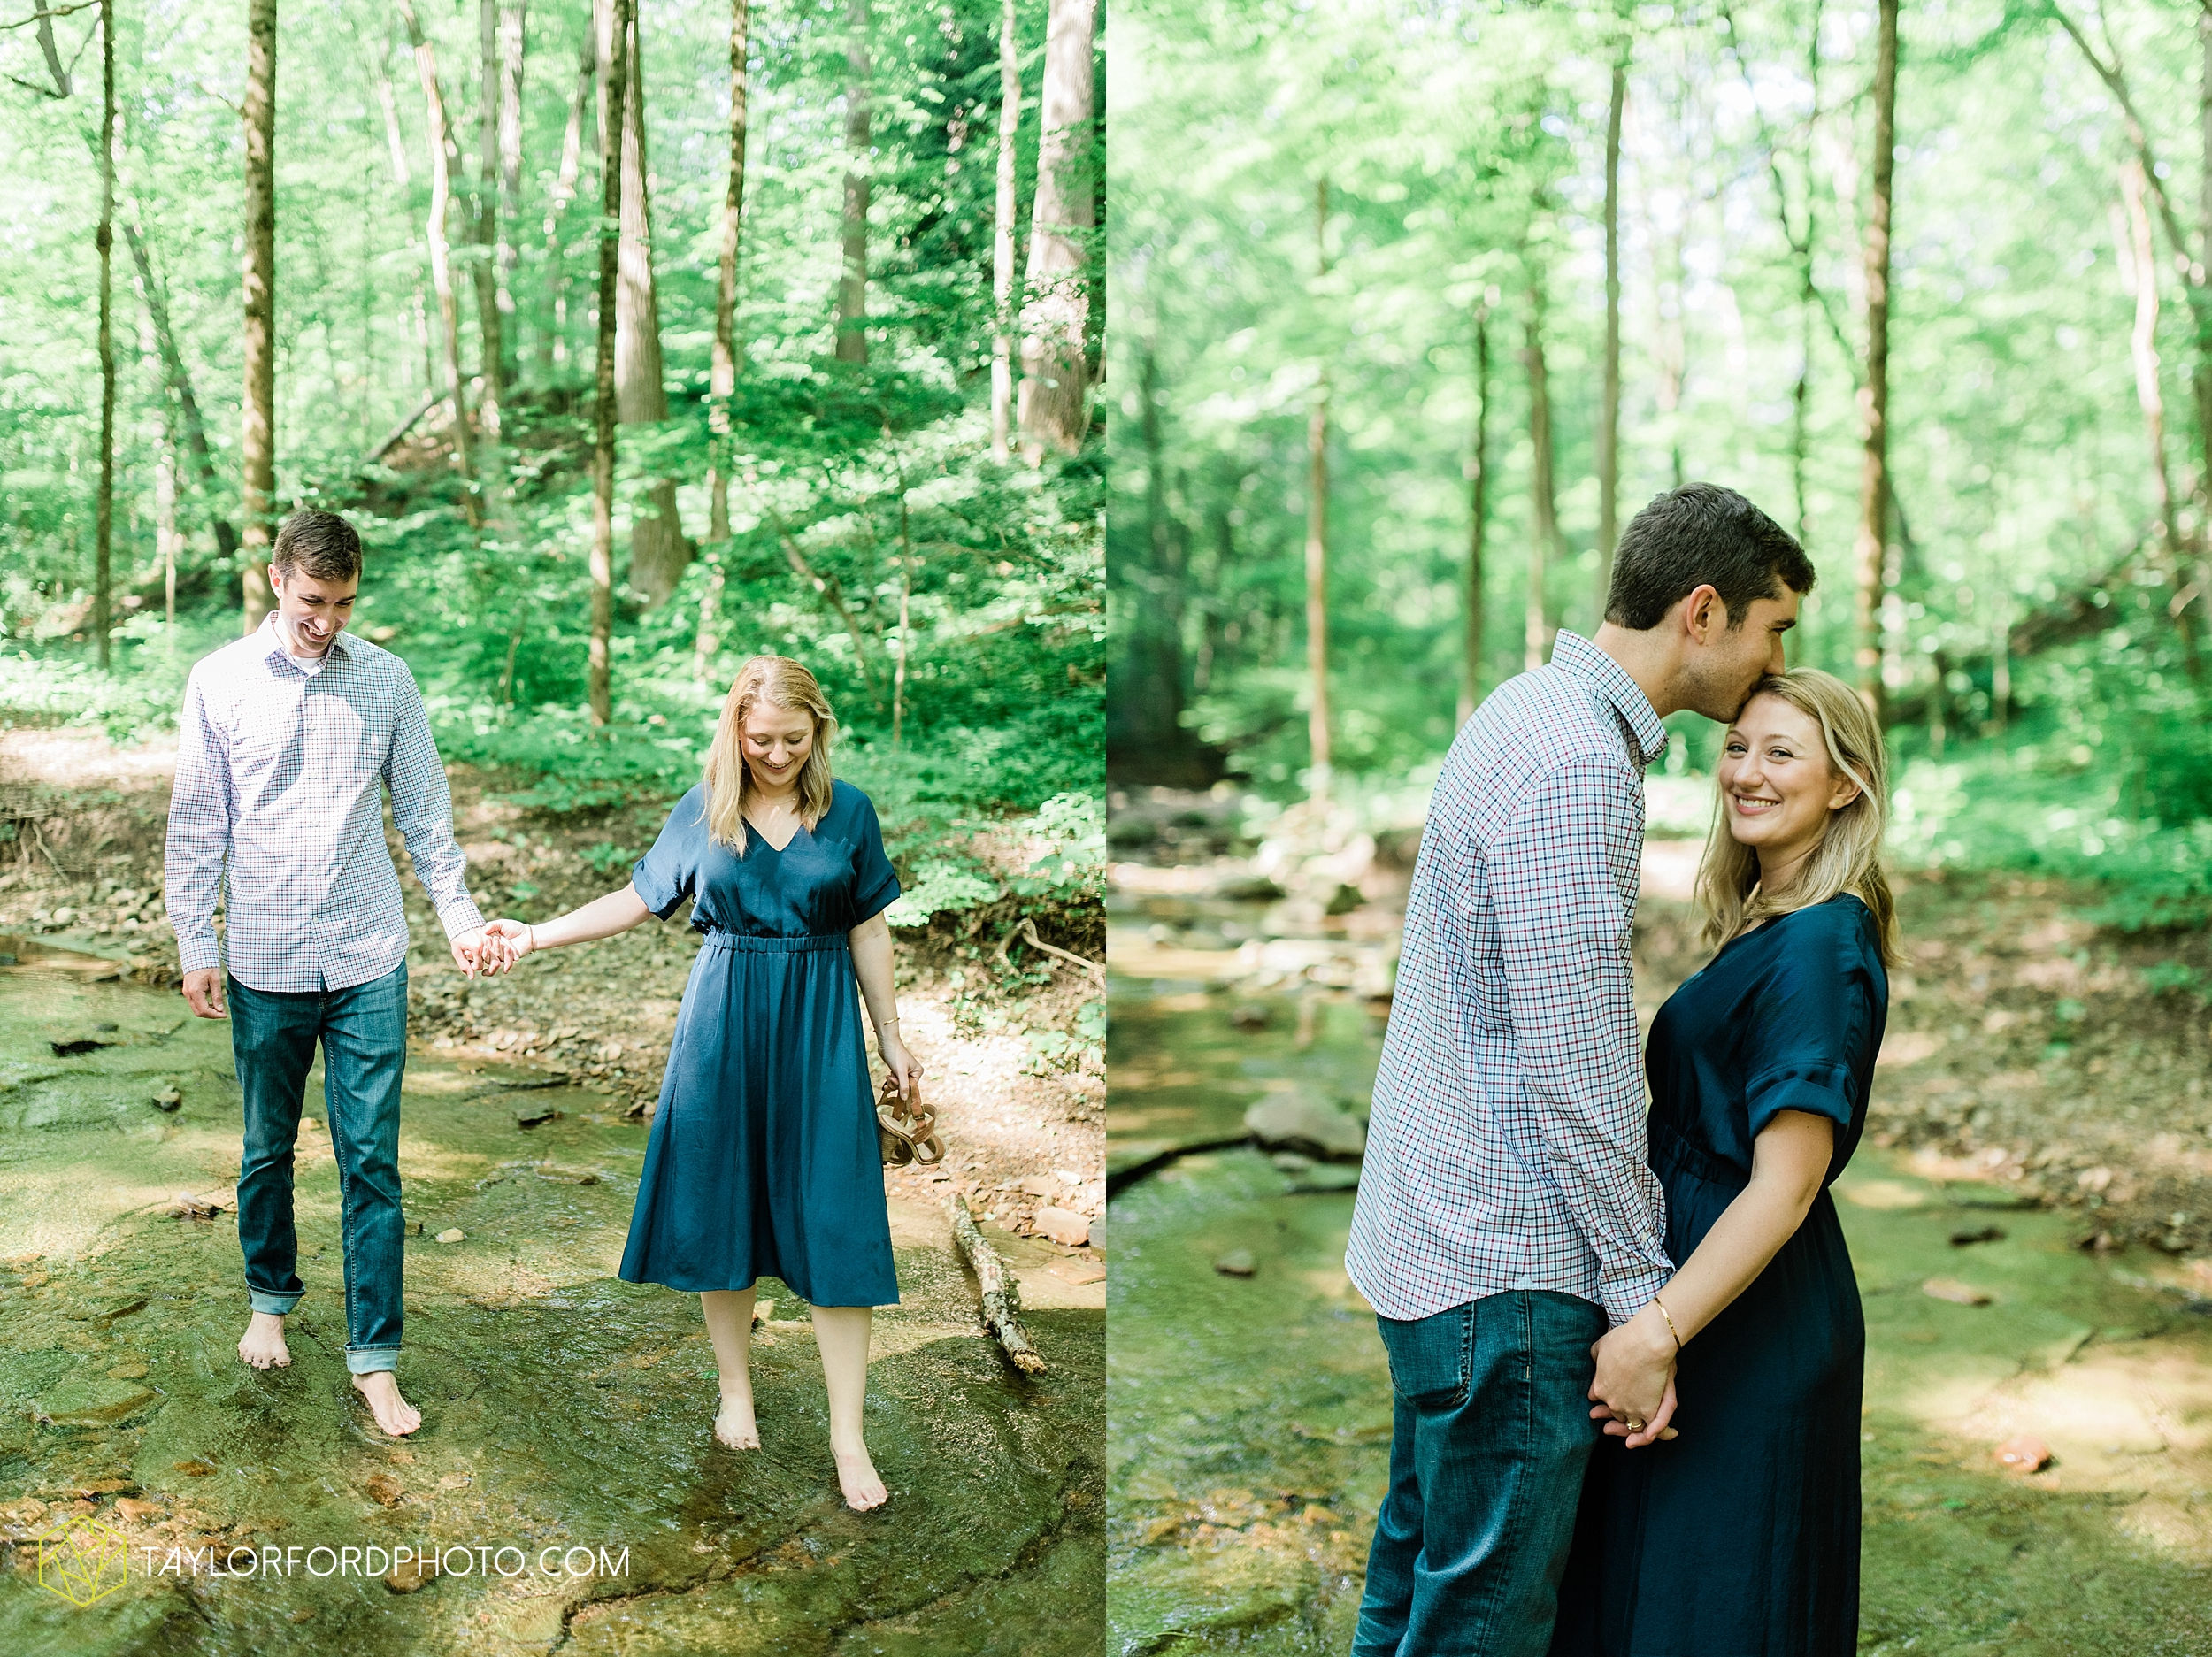 margo-evan-kohler-south-chagrin-reservation-chagrin-falls-cleveland-ohio-engagement-wedding-photographer-Taylor-Ford-Photography_8178.jpg